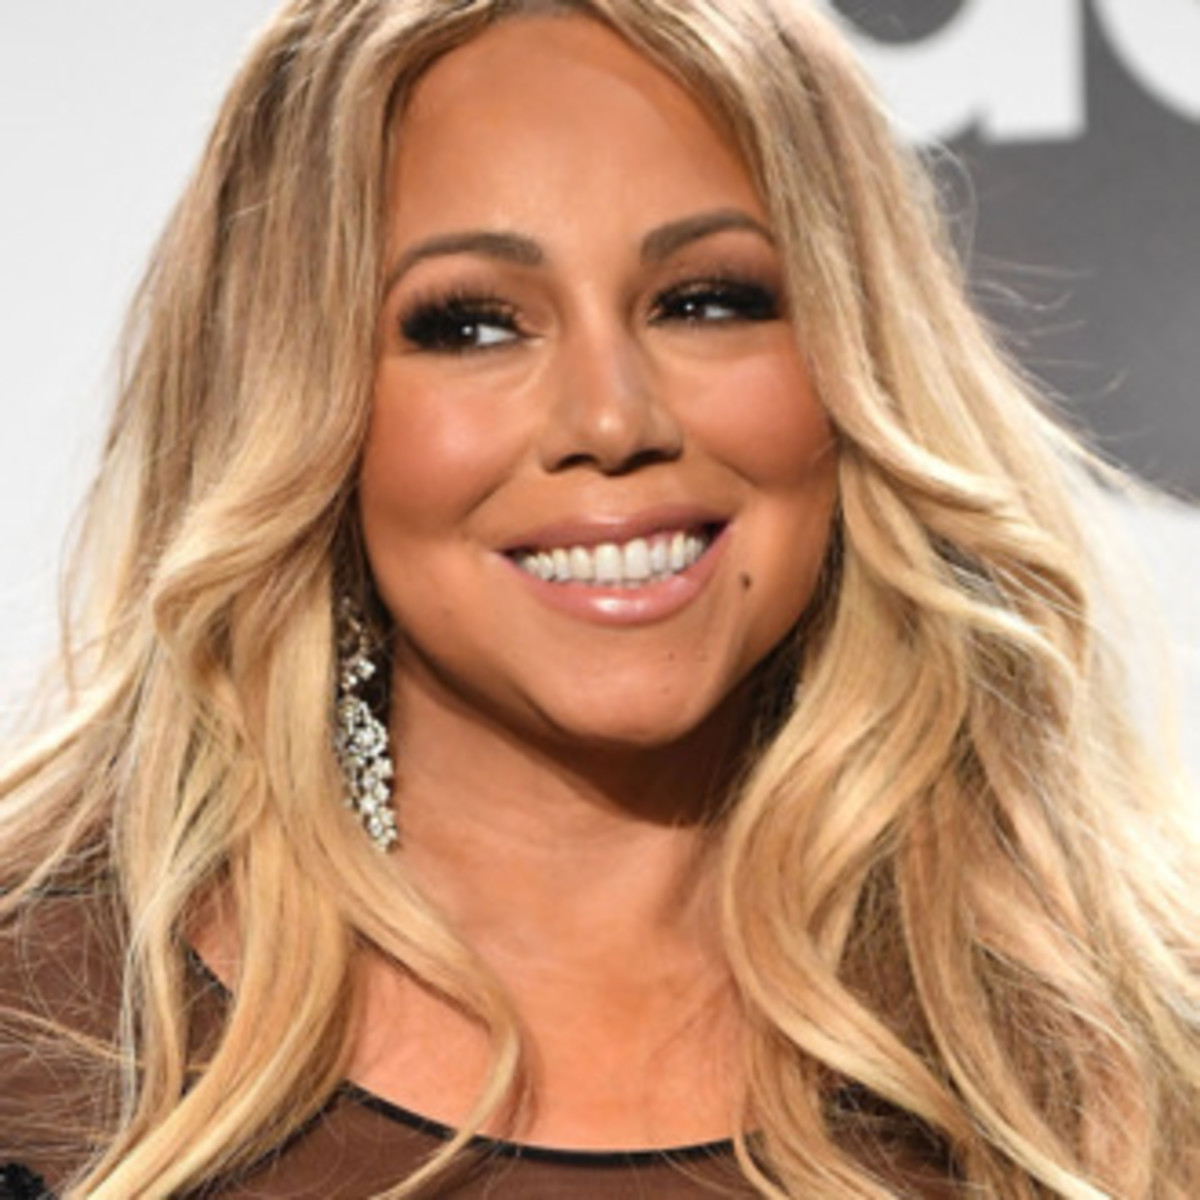 Mariah Carey has a white mother and a black father.